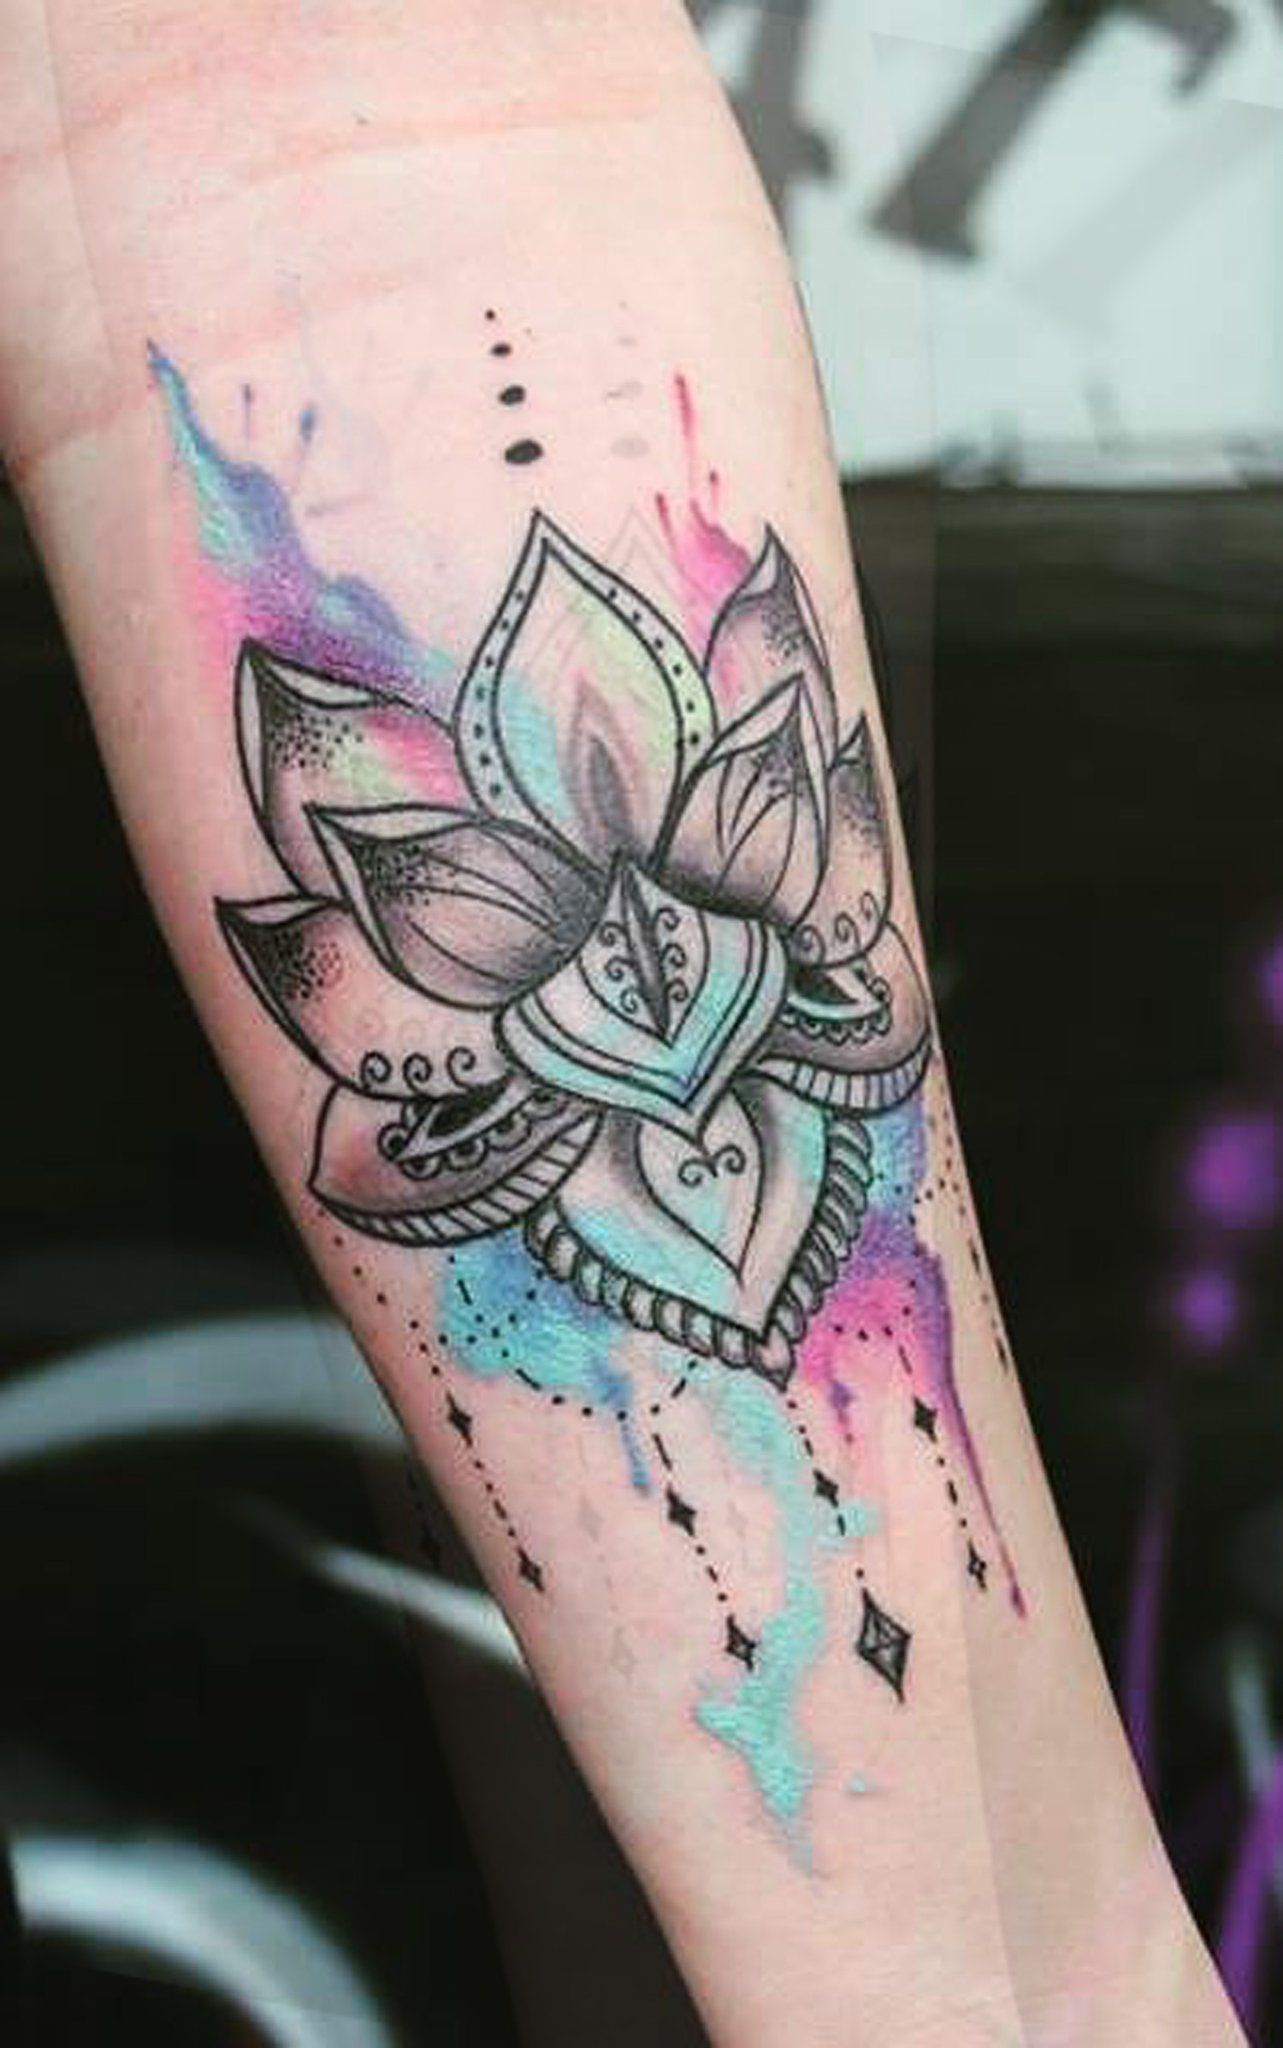 Watercolor Rainbow Colorful Lotus Mandala Chandelier Forearm